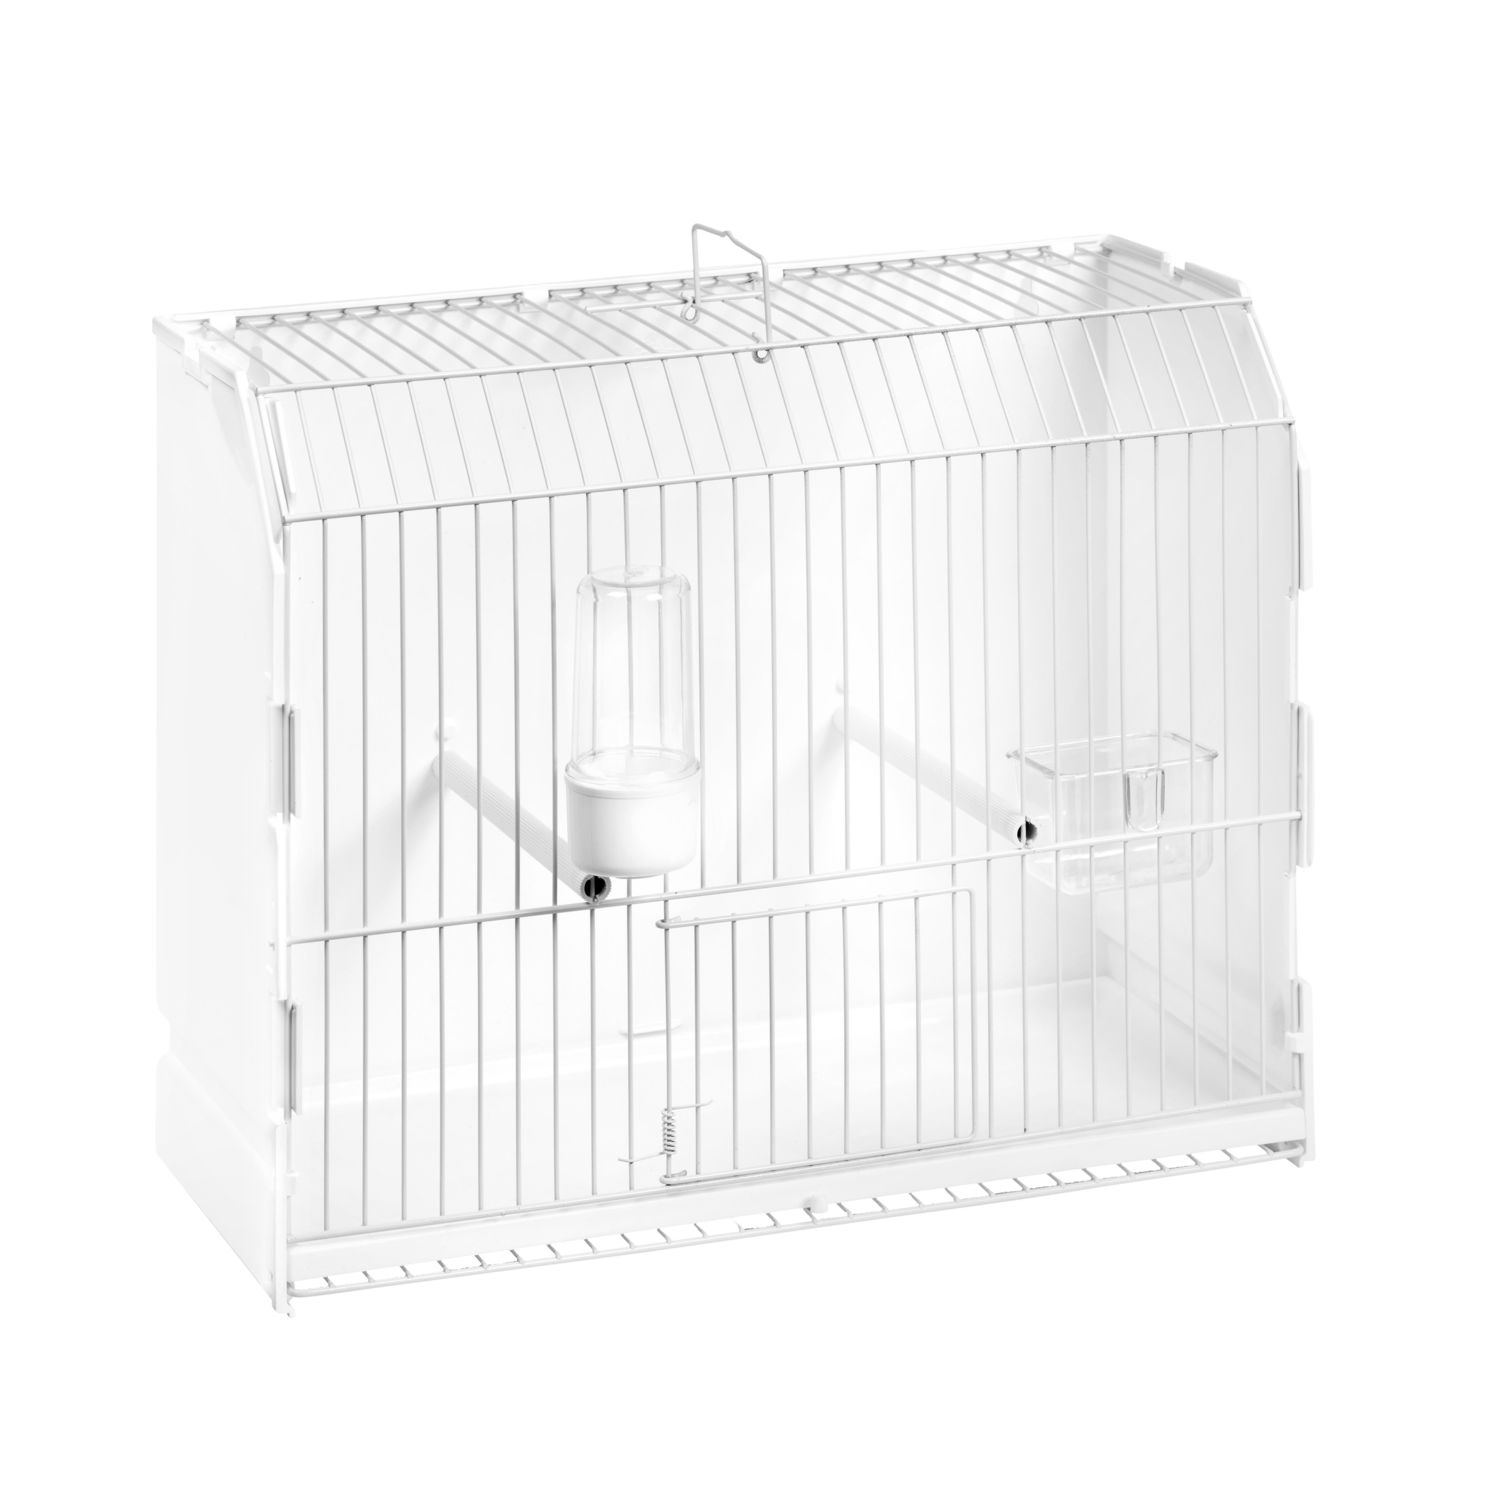 Cage exposition blanche